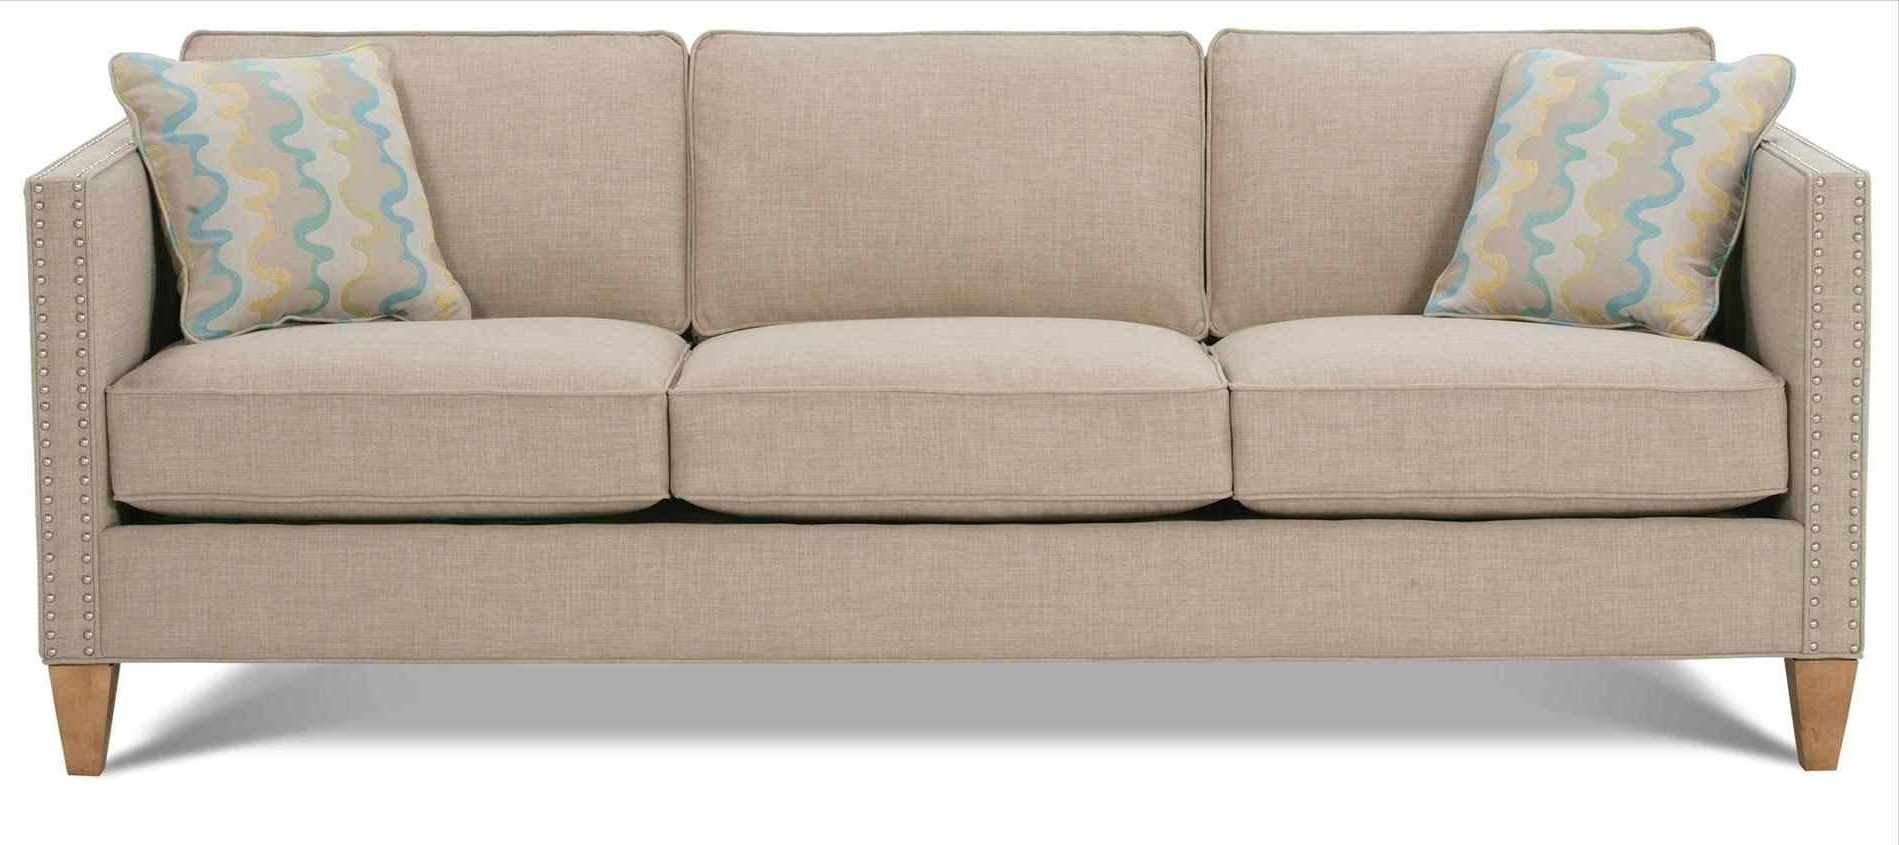 Sofa : Grey Lounge Furniture Out U Best Collection Of S Best For 2017 Modern 3 Seater Sofas (View 14 of 15)